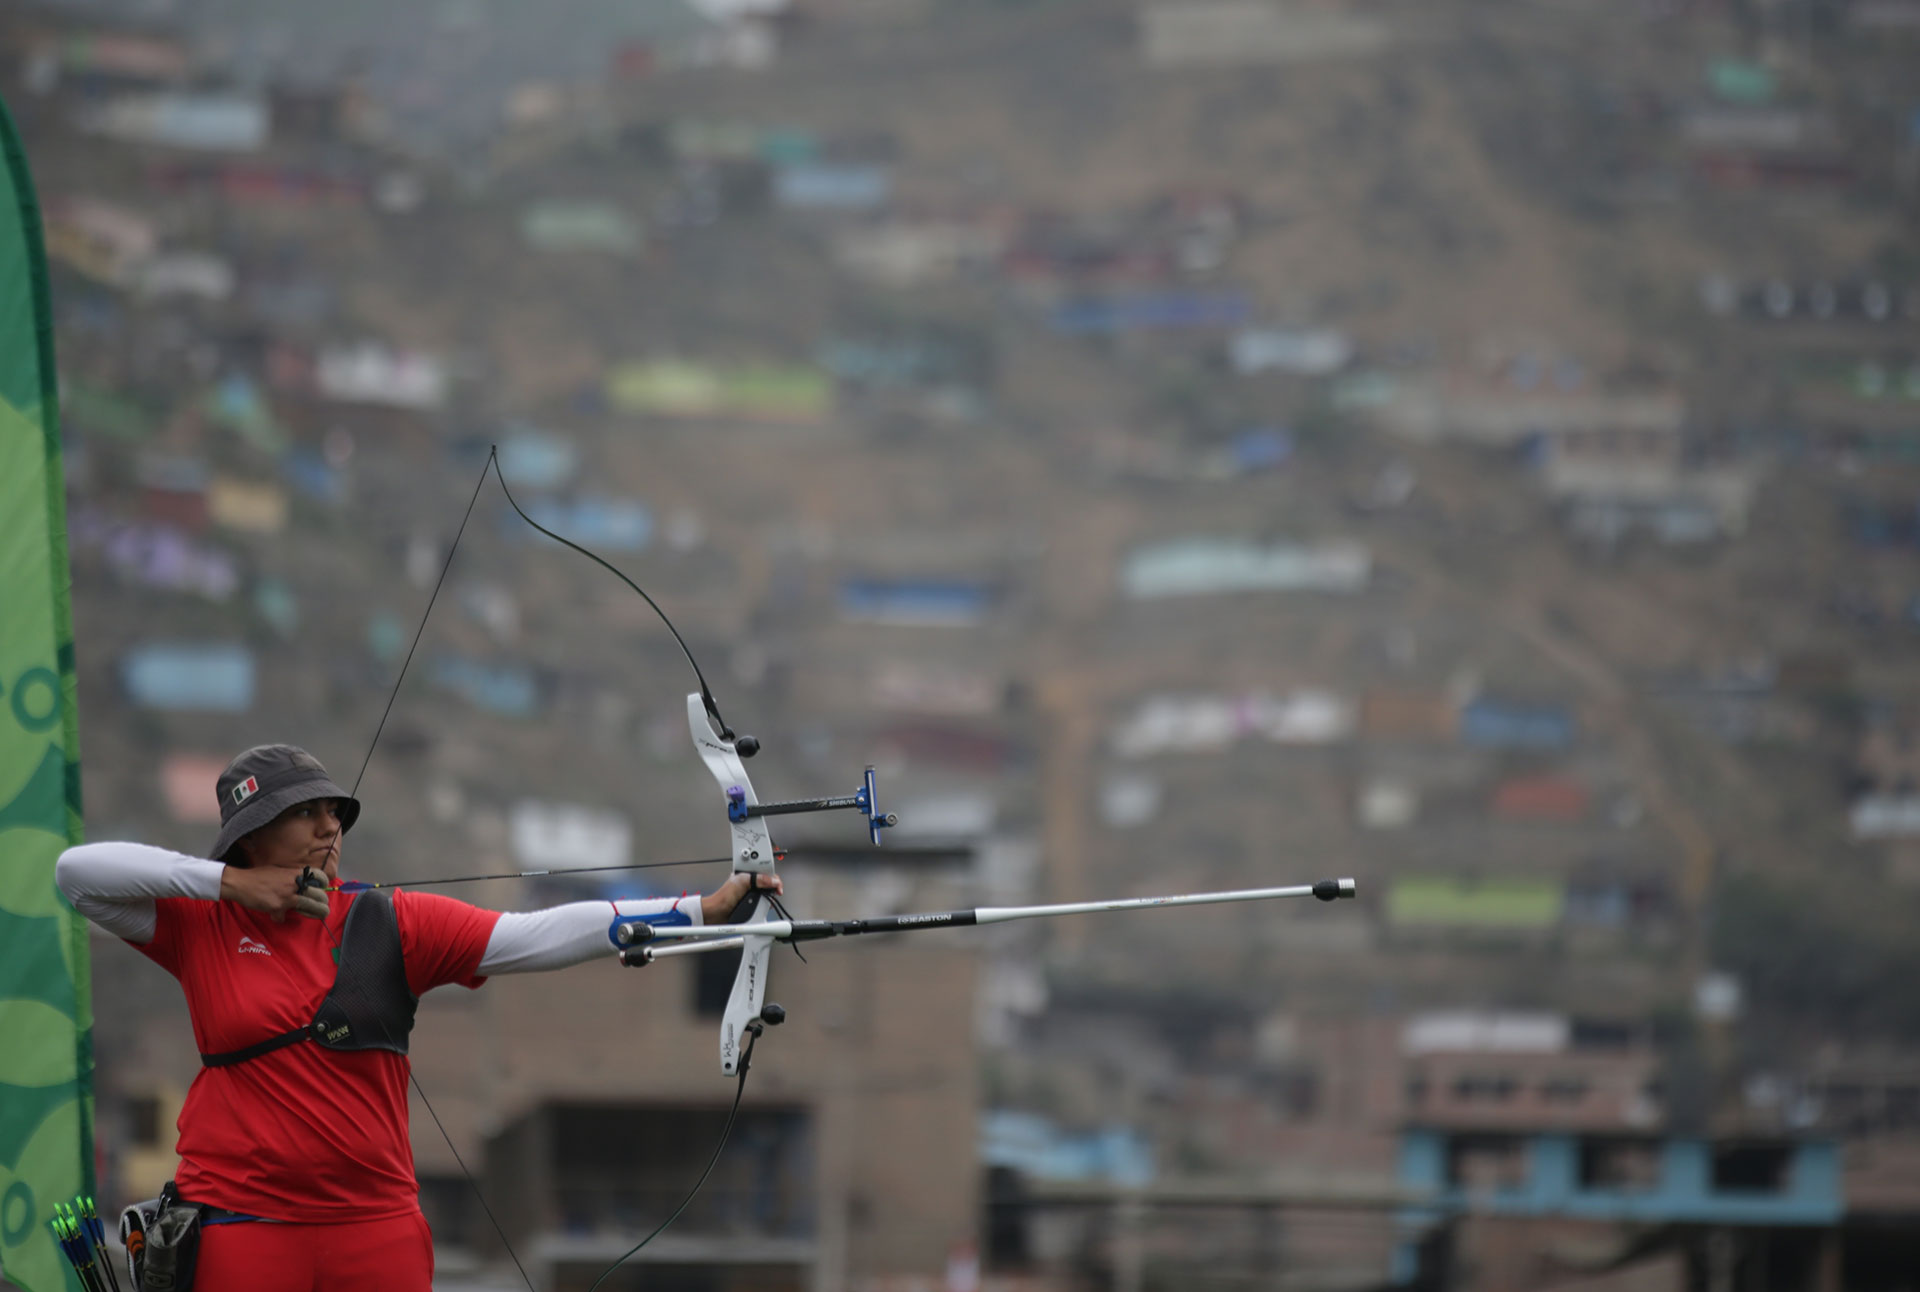 XVIII Pan American Games - Lima 2019 - Archery - Women's Recurve Individual Gold Medal Match - Rugby Field, Lima, Peru - August 11, 2019. Mexico's Alejandra Valencia Trujillo in action en route to winning a gold medal. REUTERS/Guadalupe Pardo